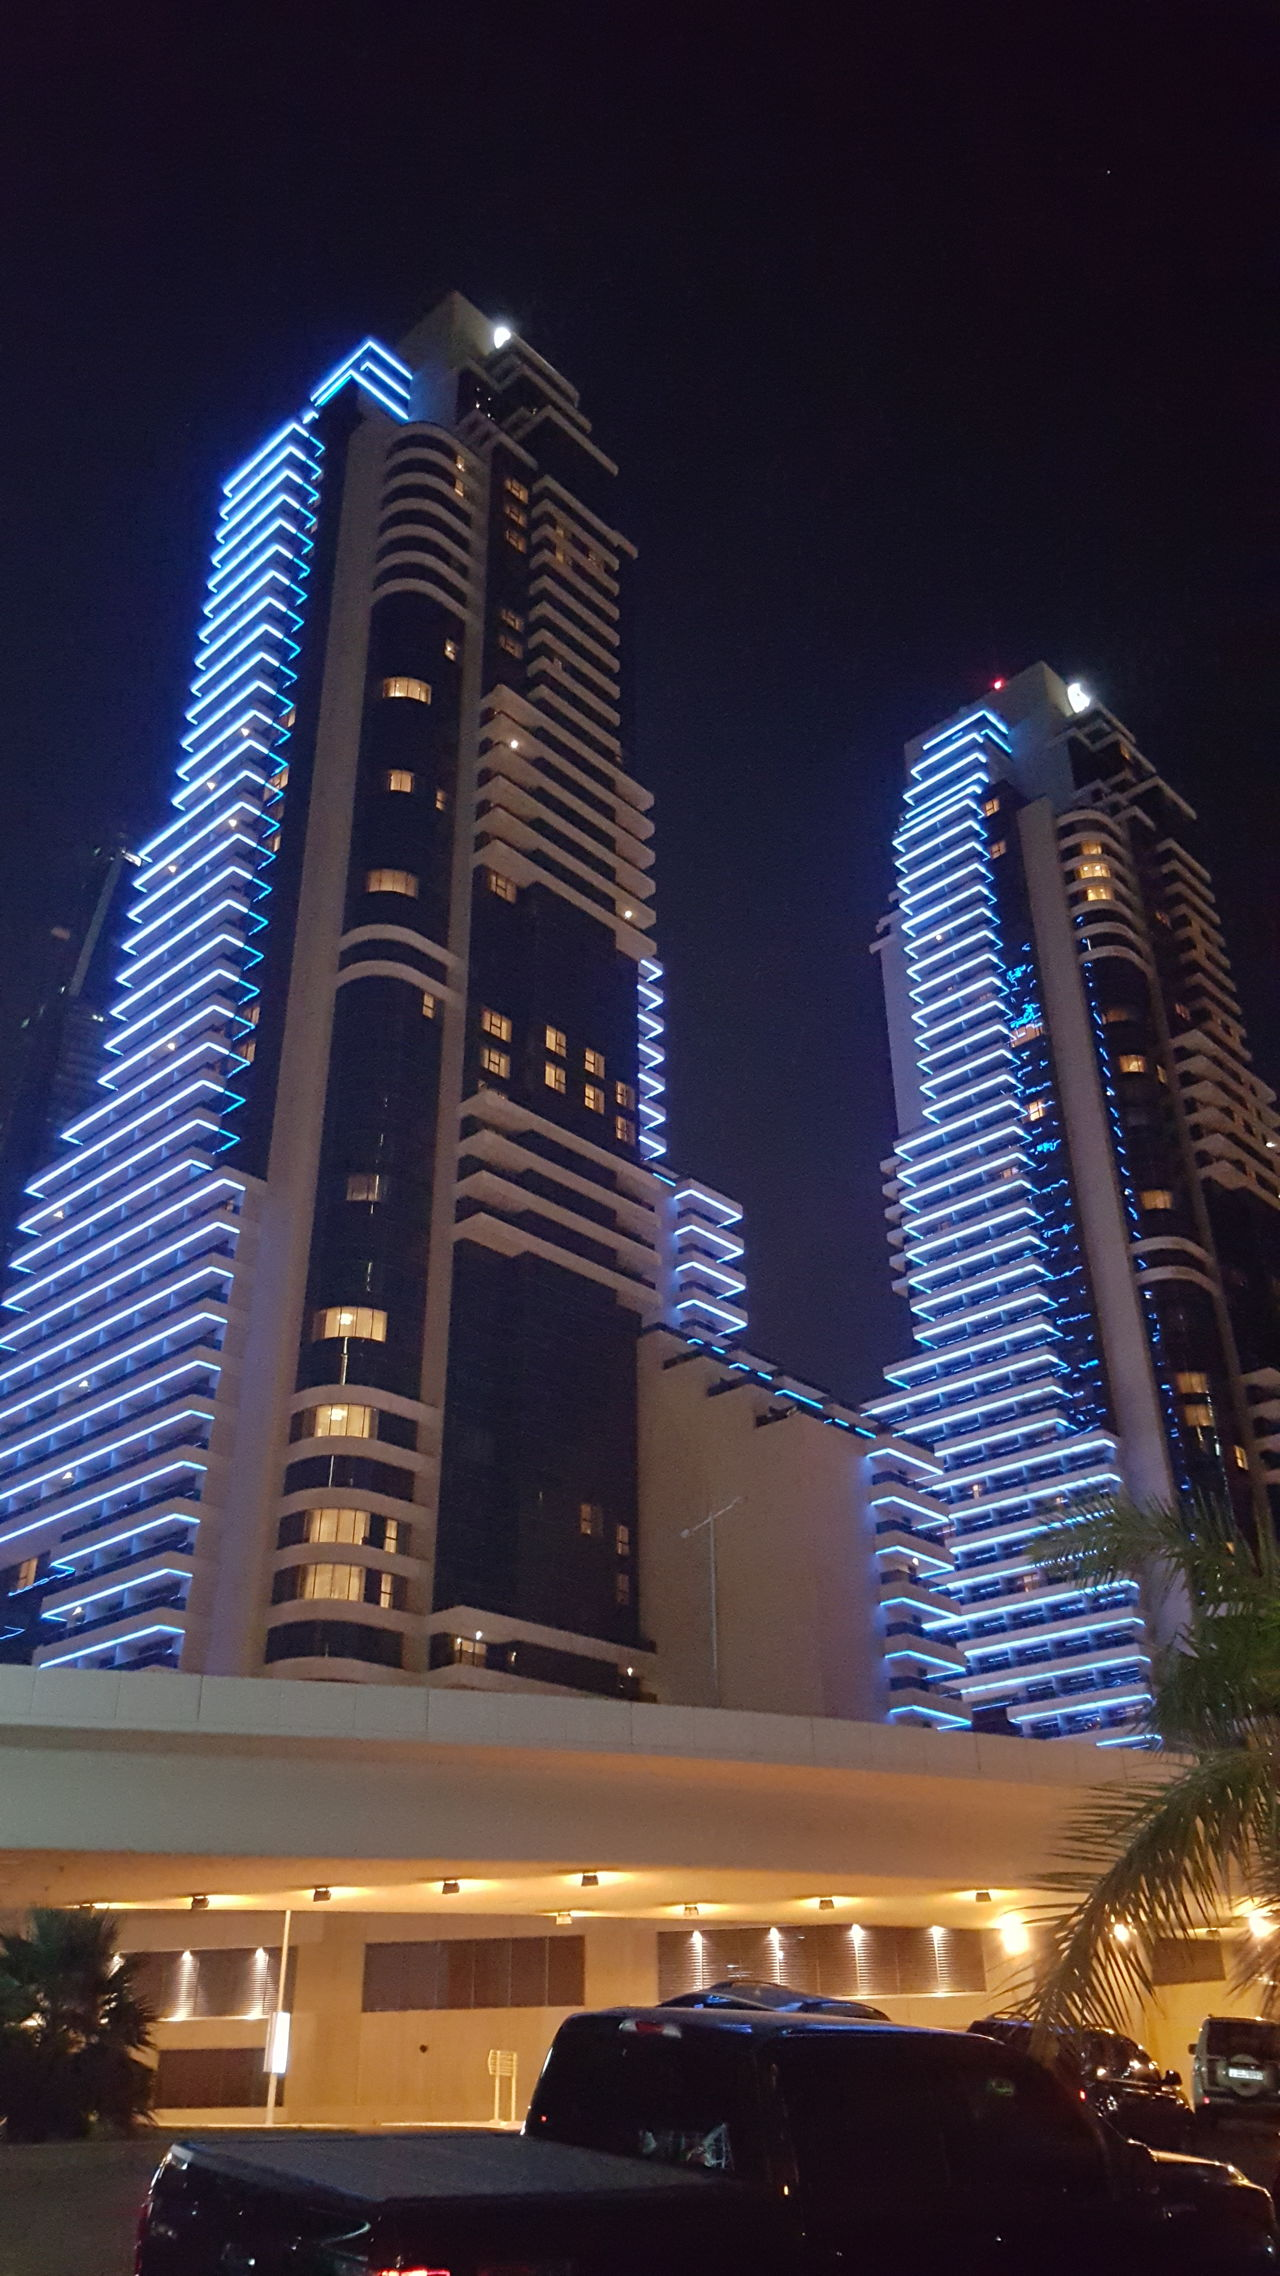 Architecture Building Exterior Buildings Business Finance And Industry City City Life Cityscape Dark Dubai Dubai Marina Financial District  Futuristic Illuminated Low Angle View Modern Night No People Office Building Exterior Outdoors Skyscraper Skyscrapers Street Life Tower Travel Destinations Urban Skyline